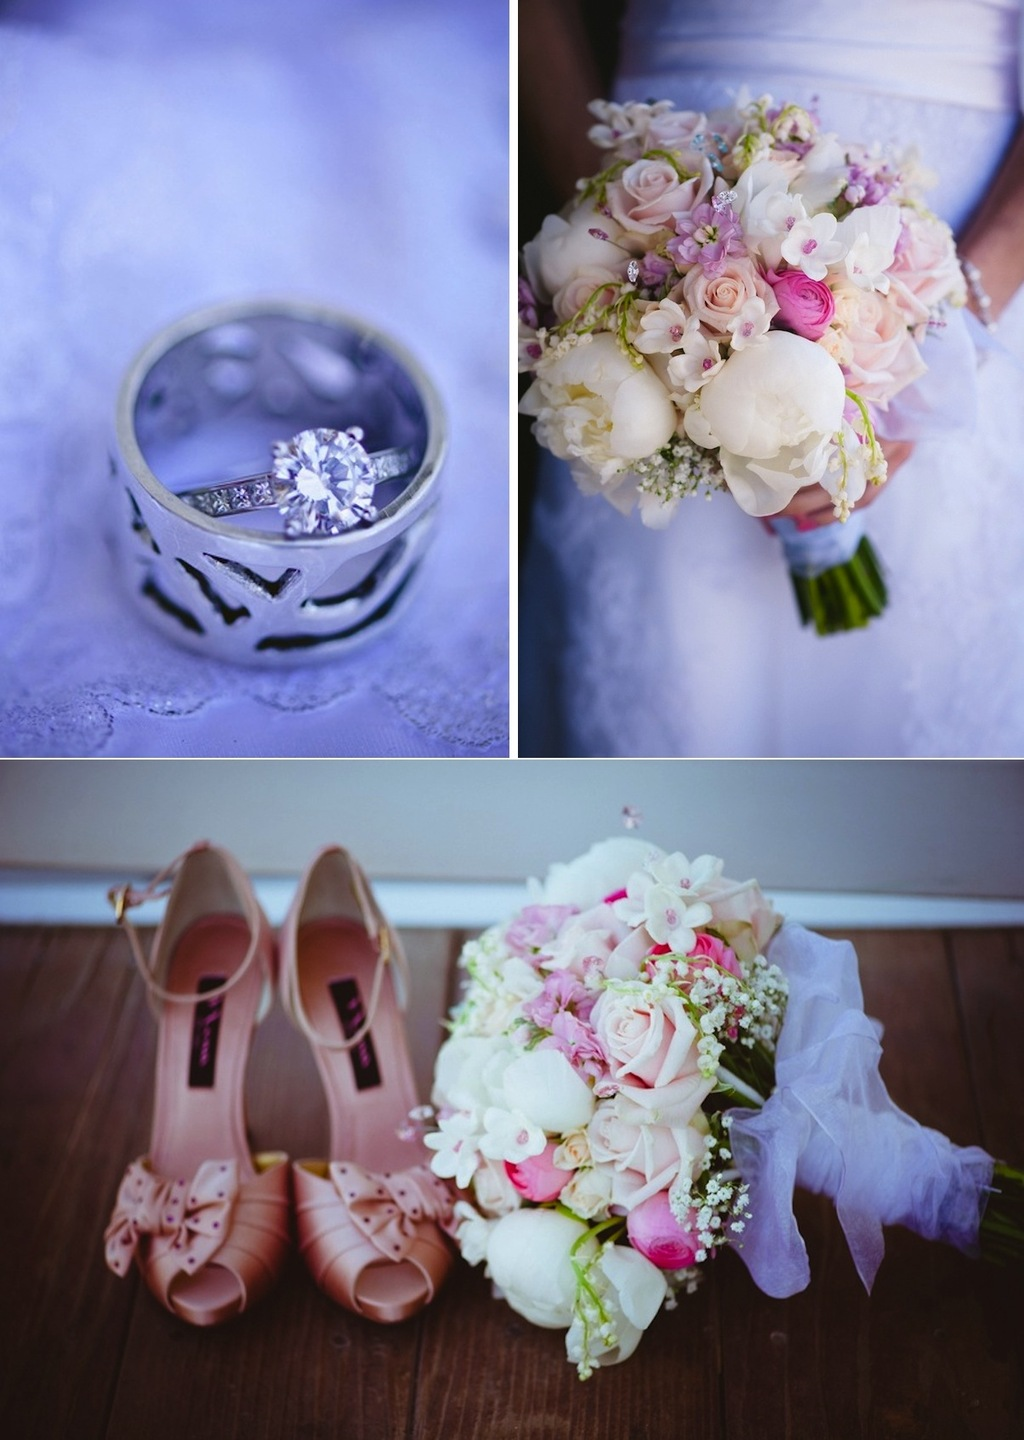 Real-wedding-genoa-nevada-lincoln-bratt-annie-x-photographie-bride-shoes-ring-bouquet.full